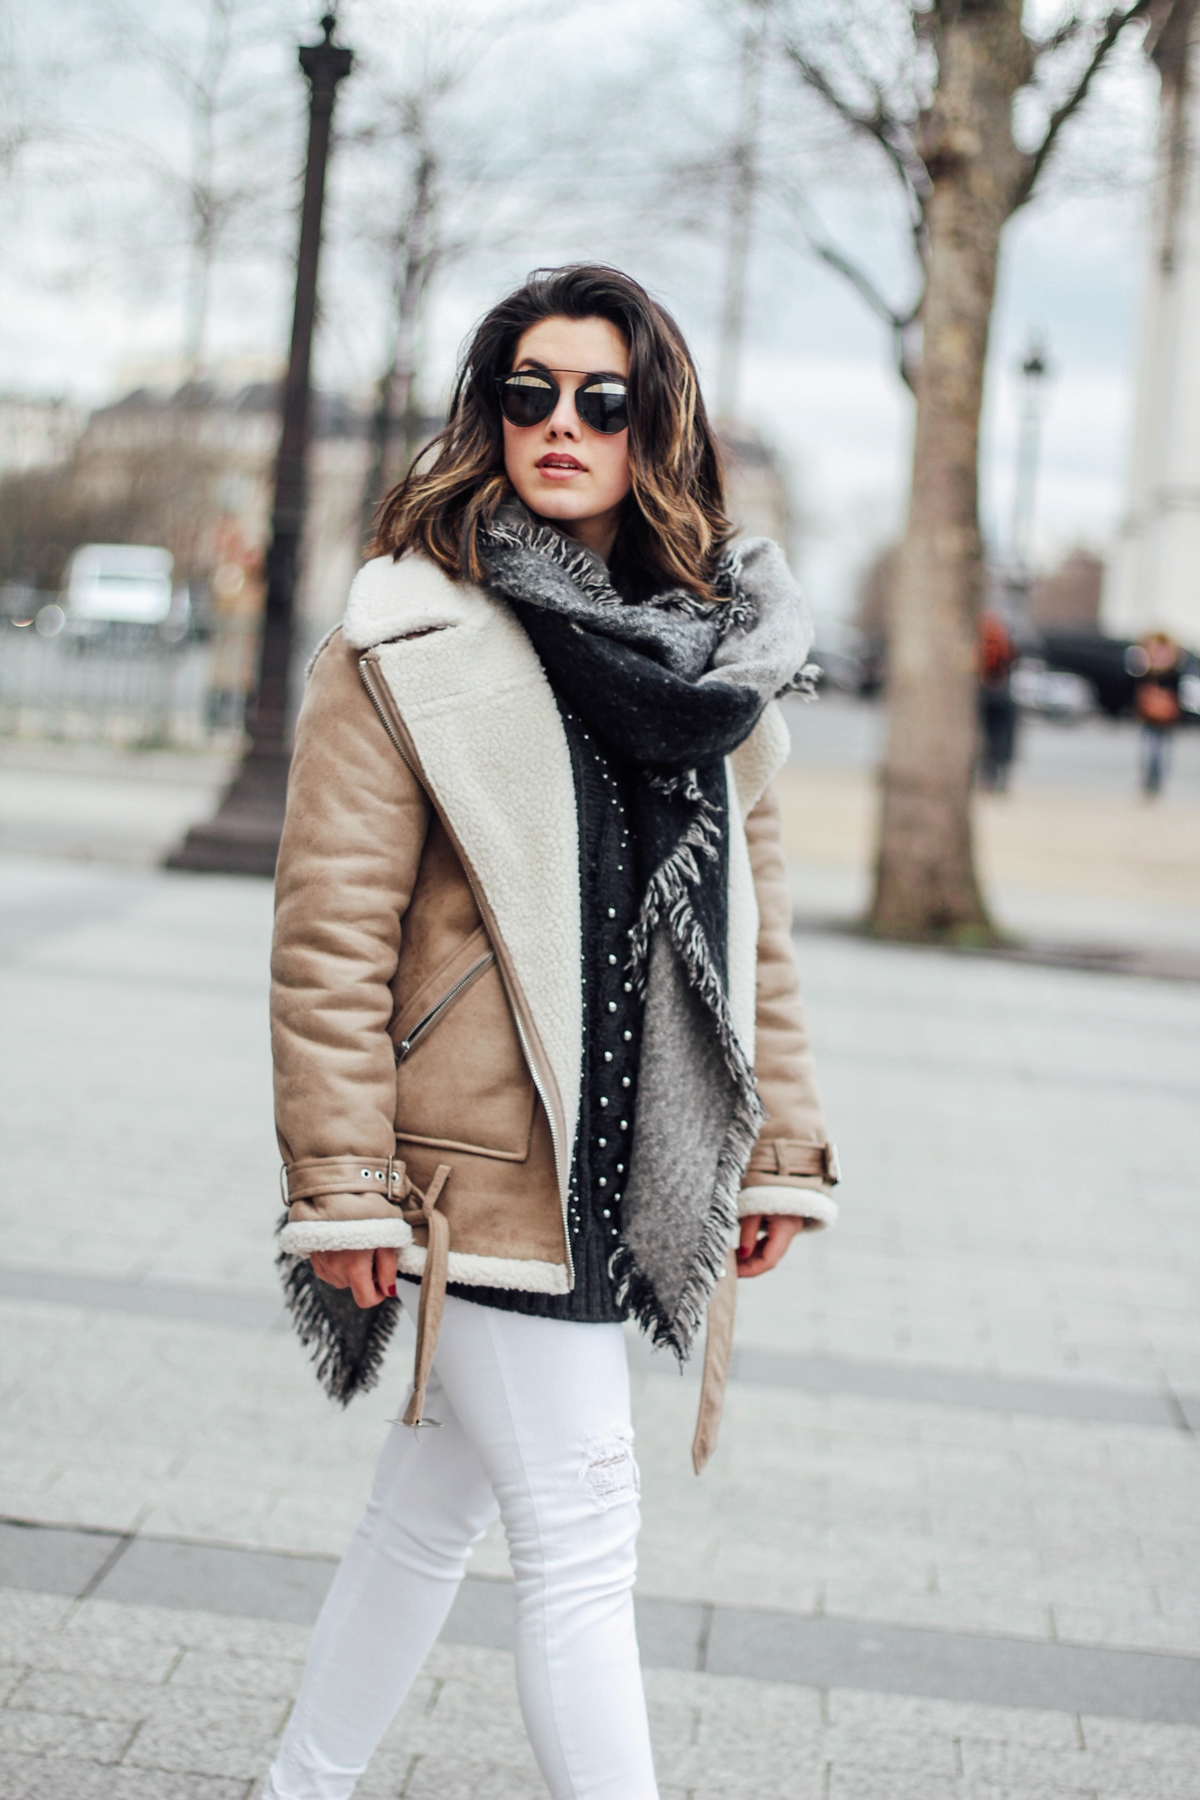 shearling-jacket-beige-isabel-marant-sneakers-streetstyle dior so real sunglasses